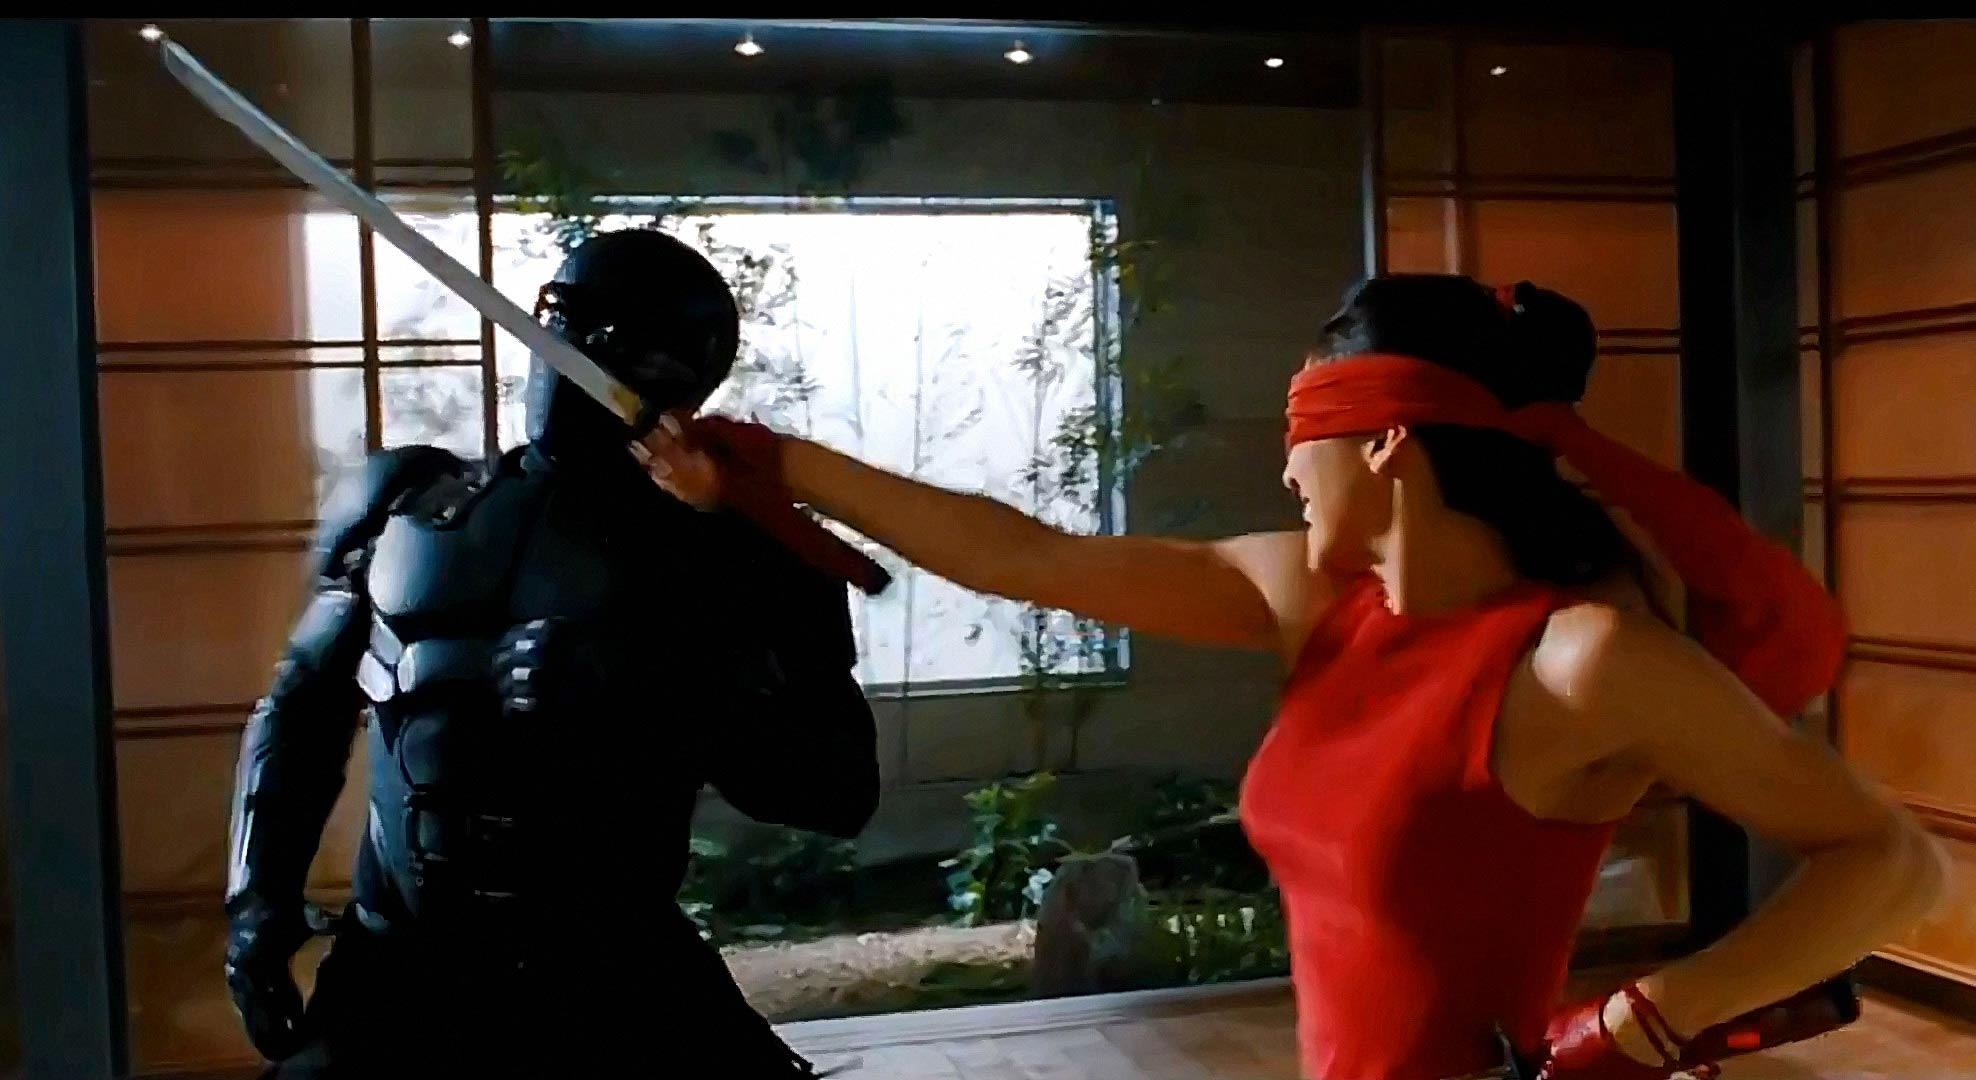 GI Joe Retaliation Babe Sword Fight Two New Foreign Trailers for G.I. Joe: Retaliation Hit The Web